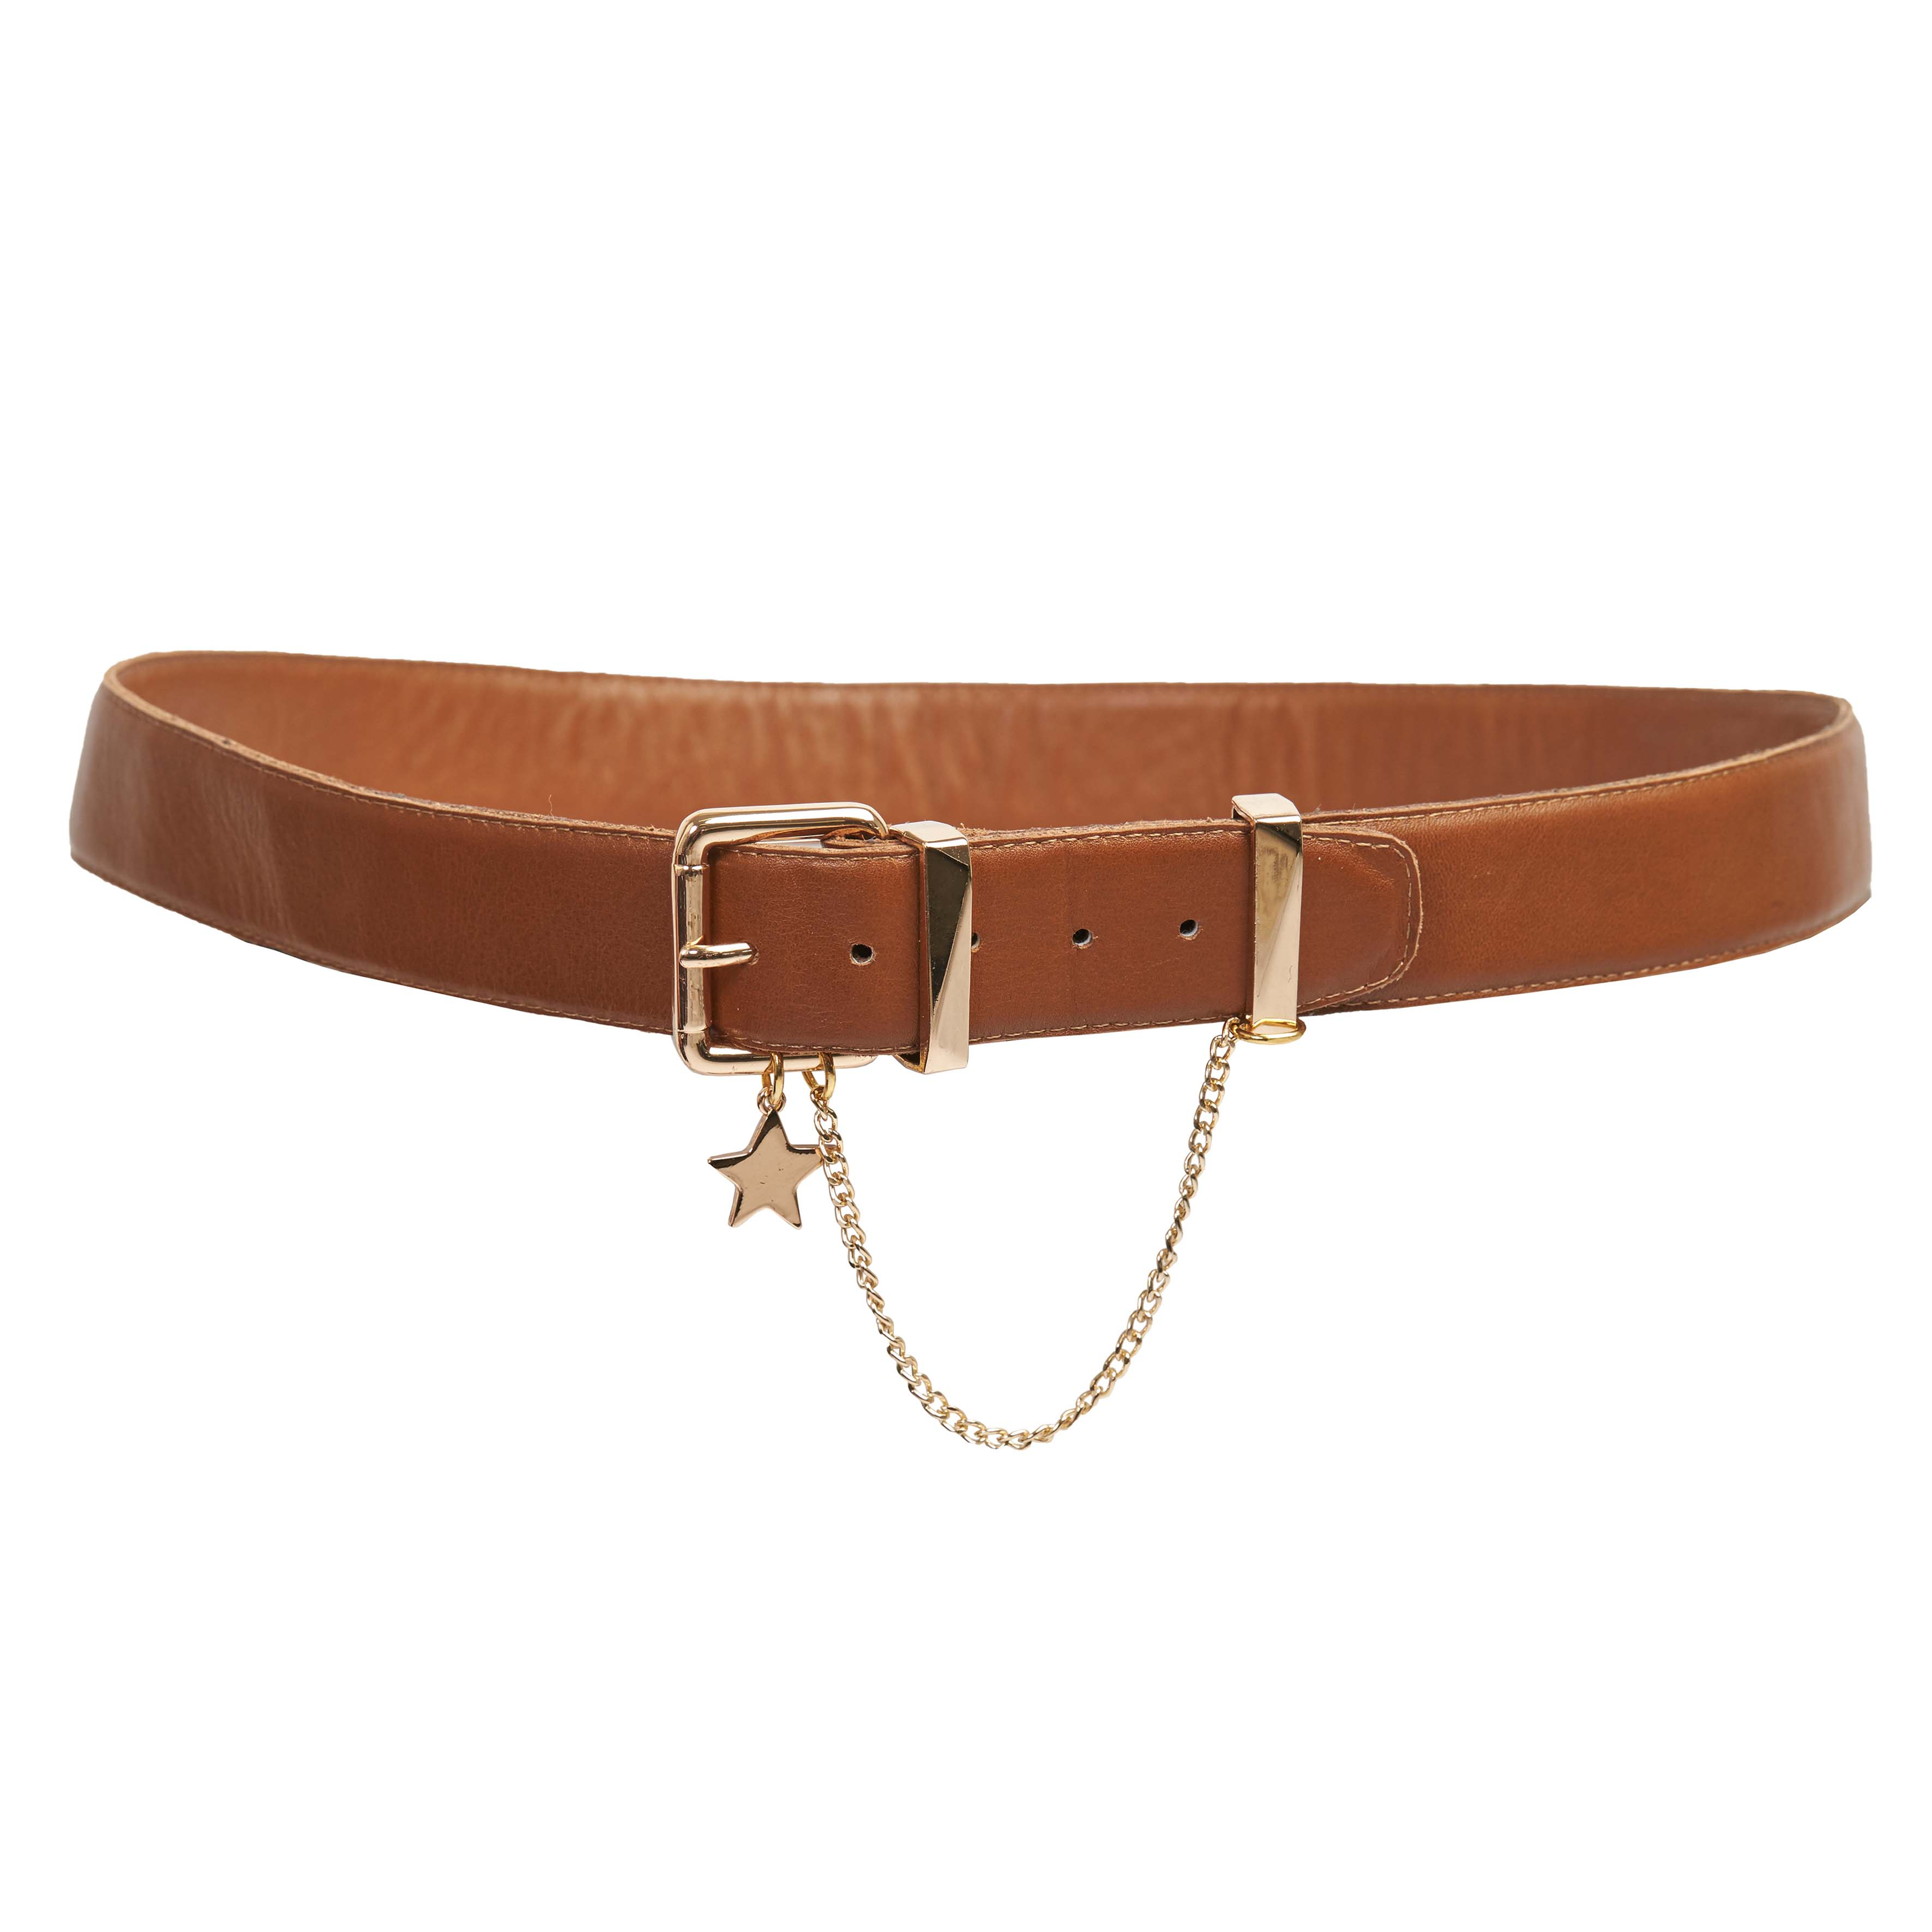 MW Belt Tan